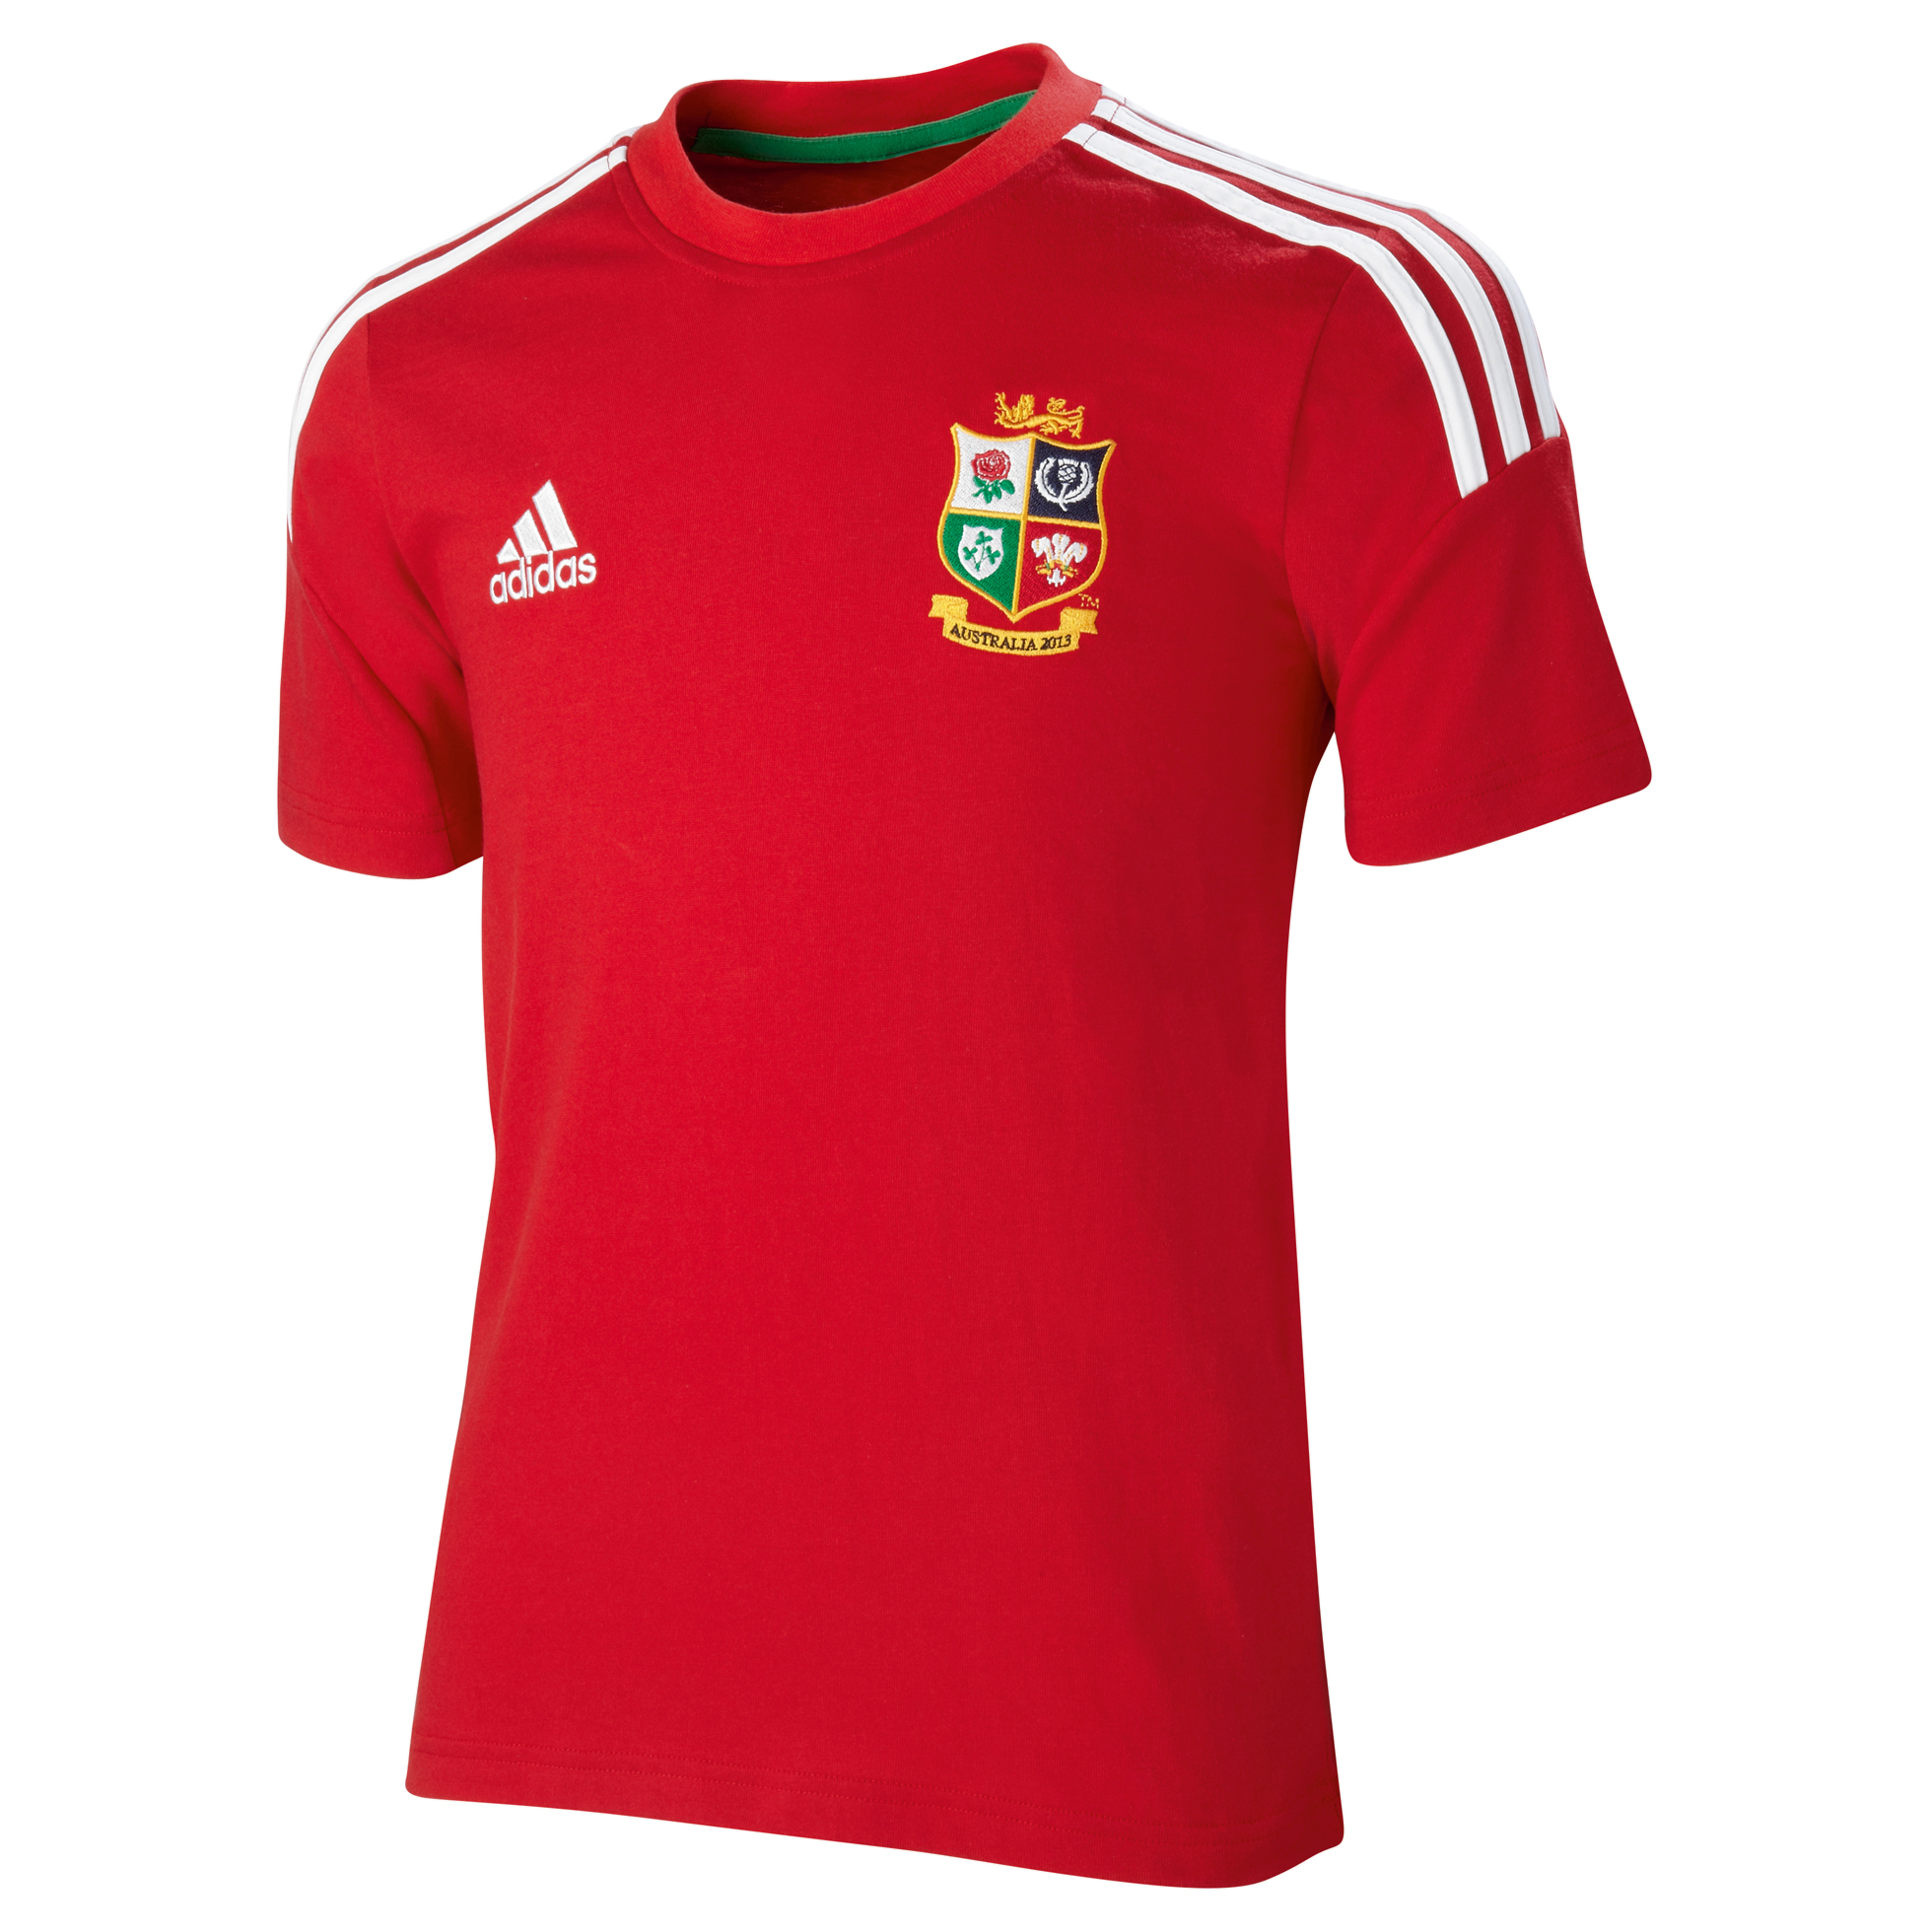 adidas British and Irish Lions T-Shirt - University Red/White - Youths